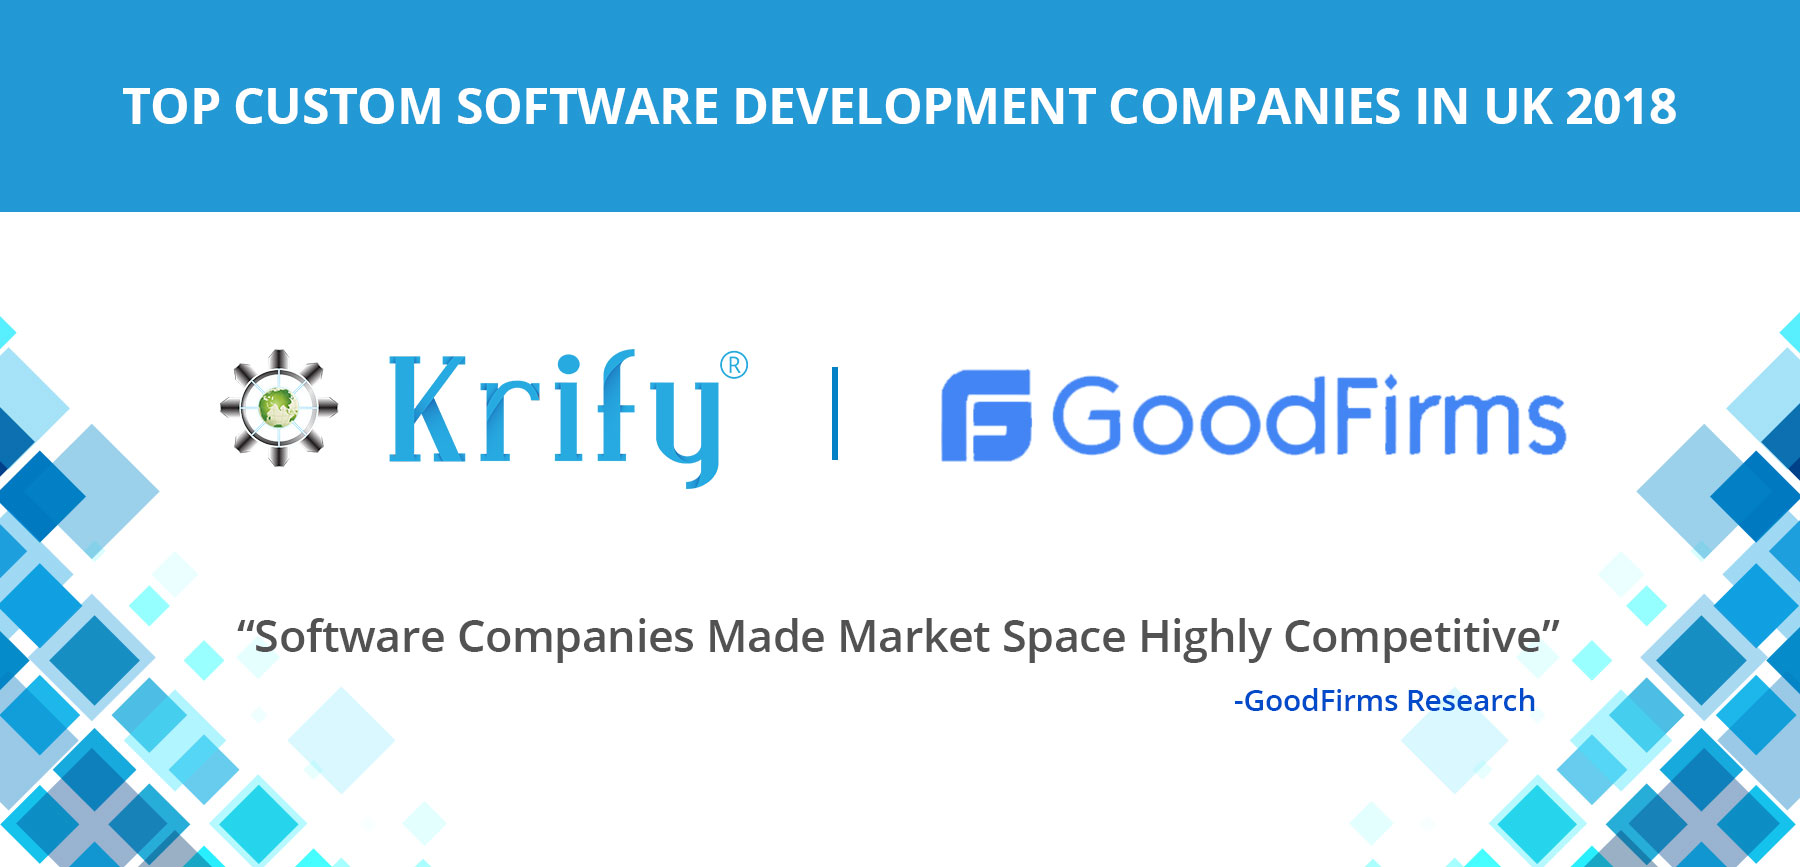 Software Developer Companies In Good Firms Top Custom Software Development Company Uk 2018 Krify